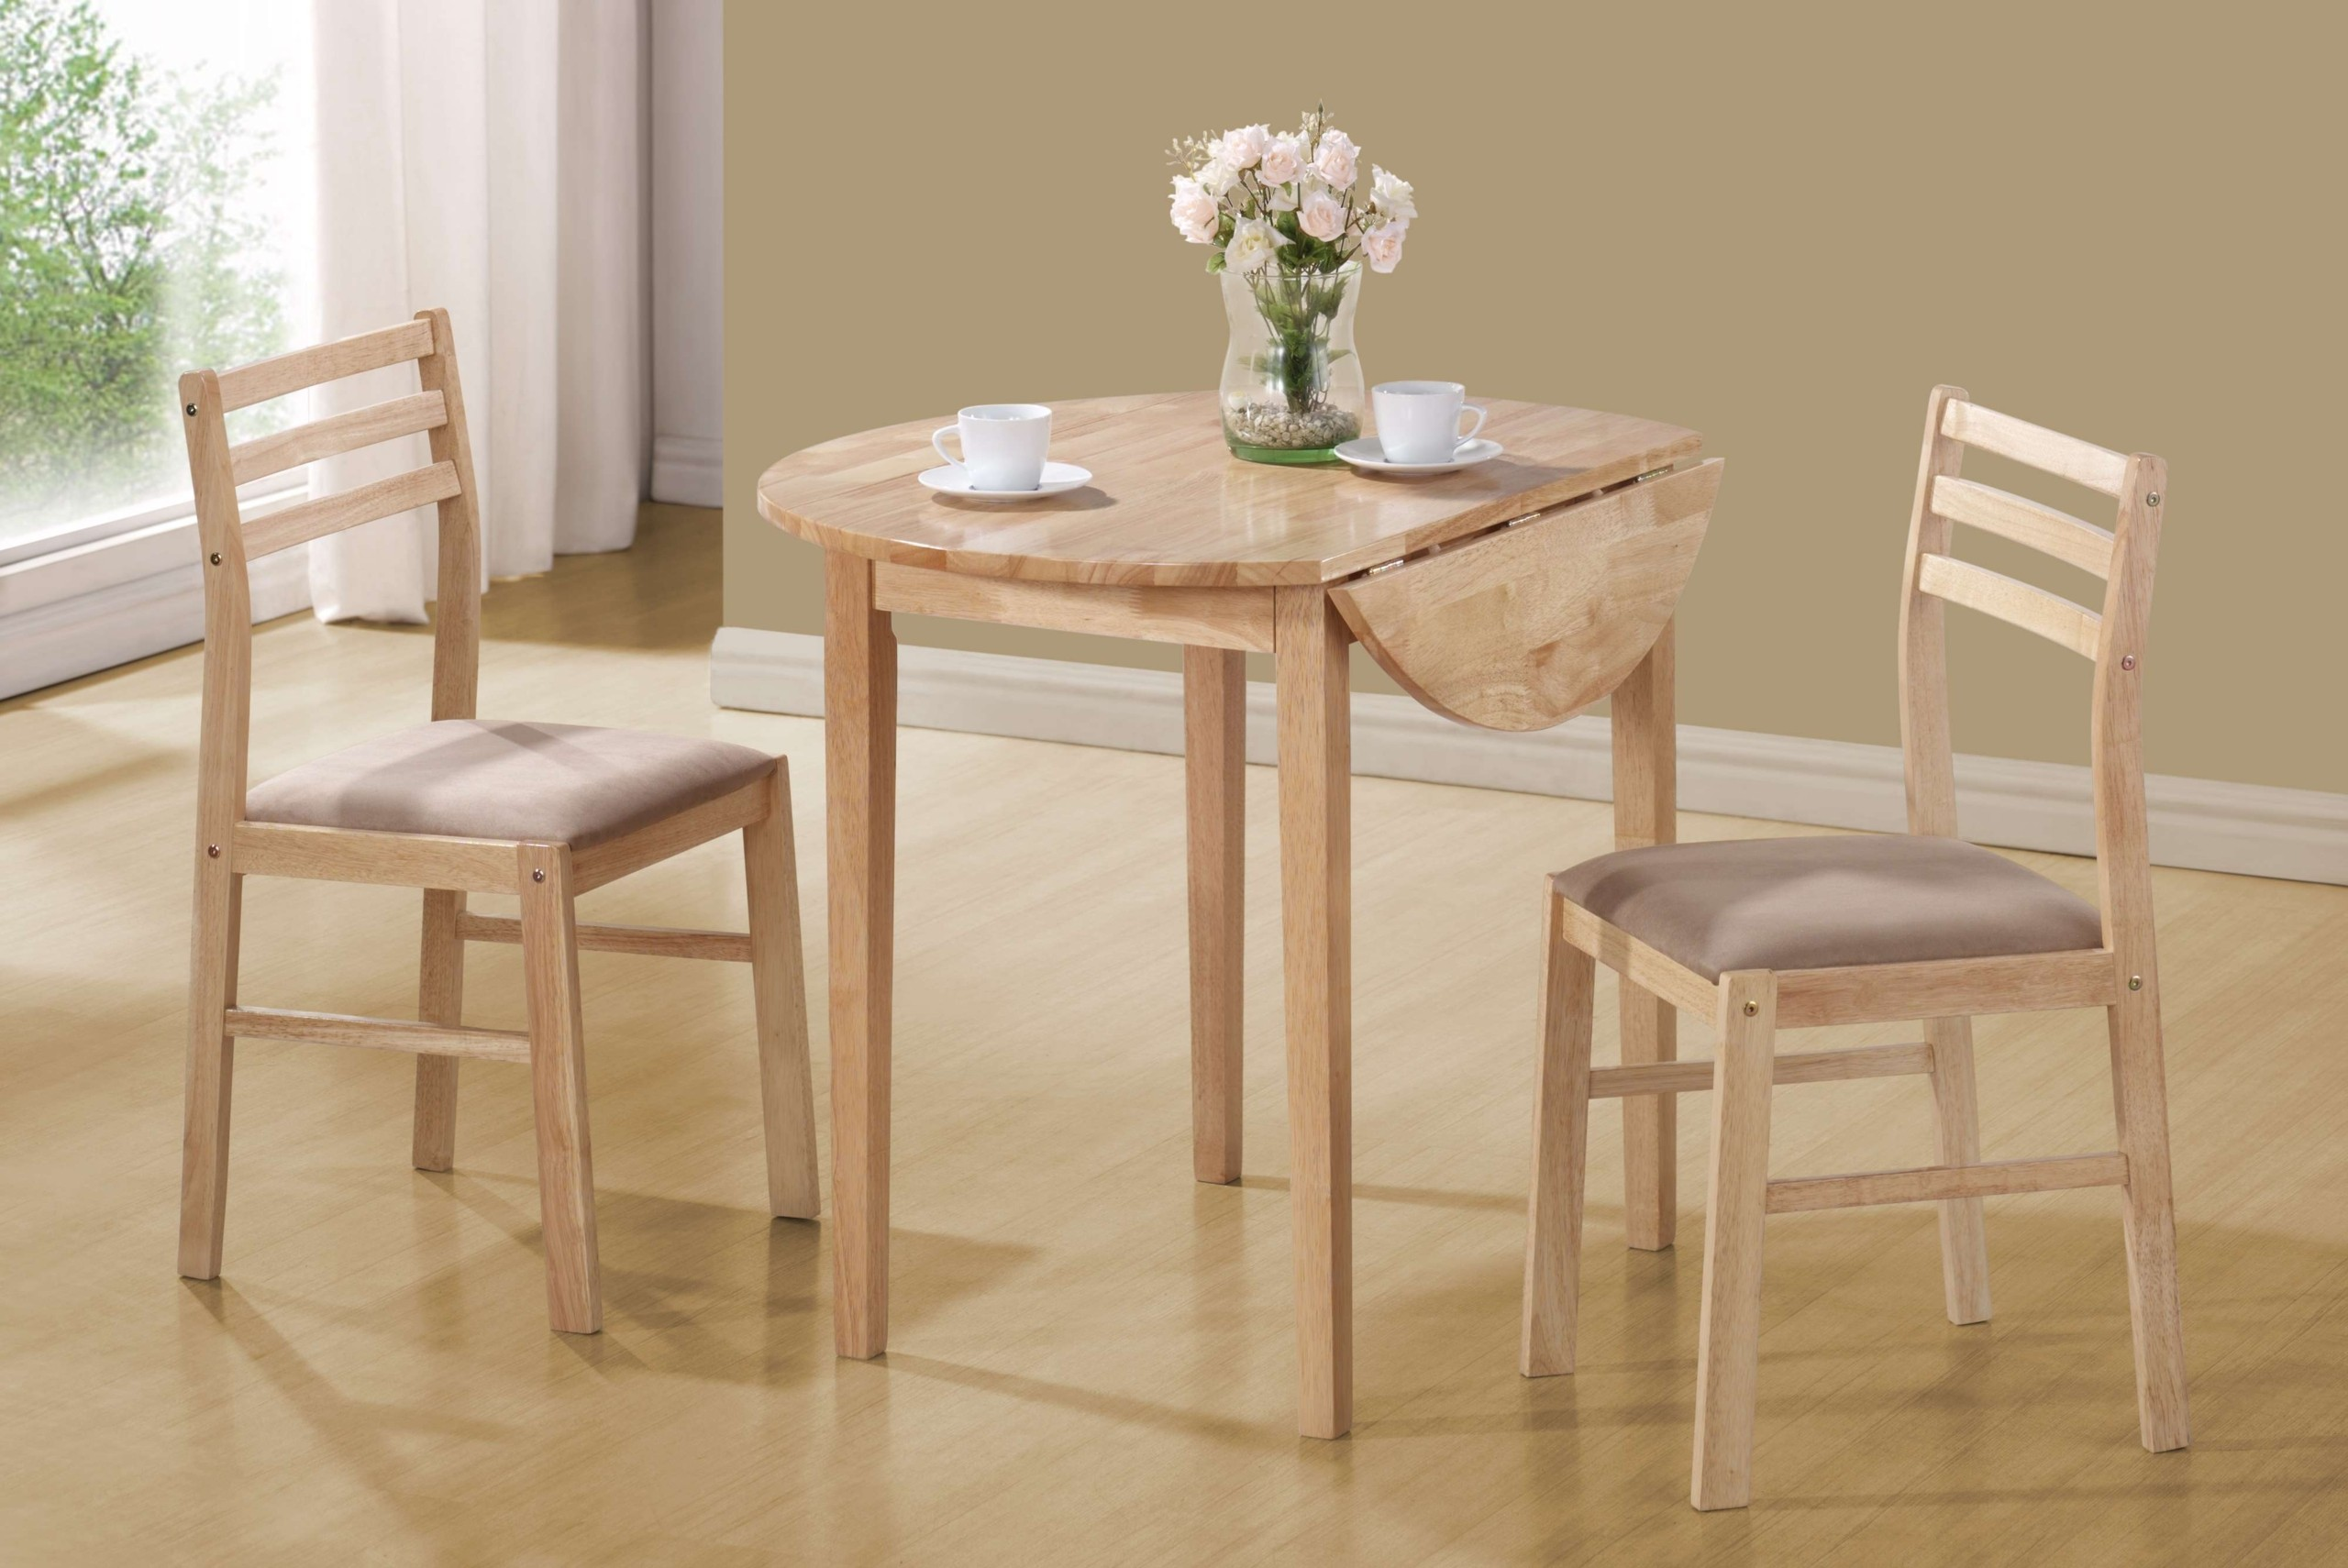 Dinette Sets for Small Kitchen Spaces Foter